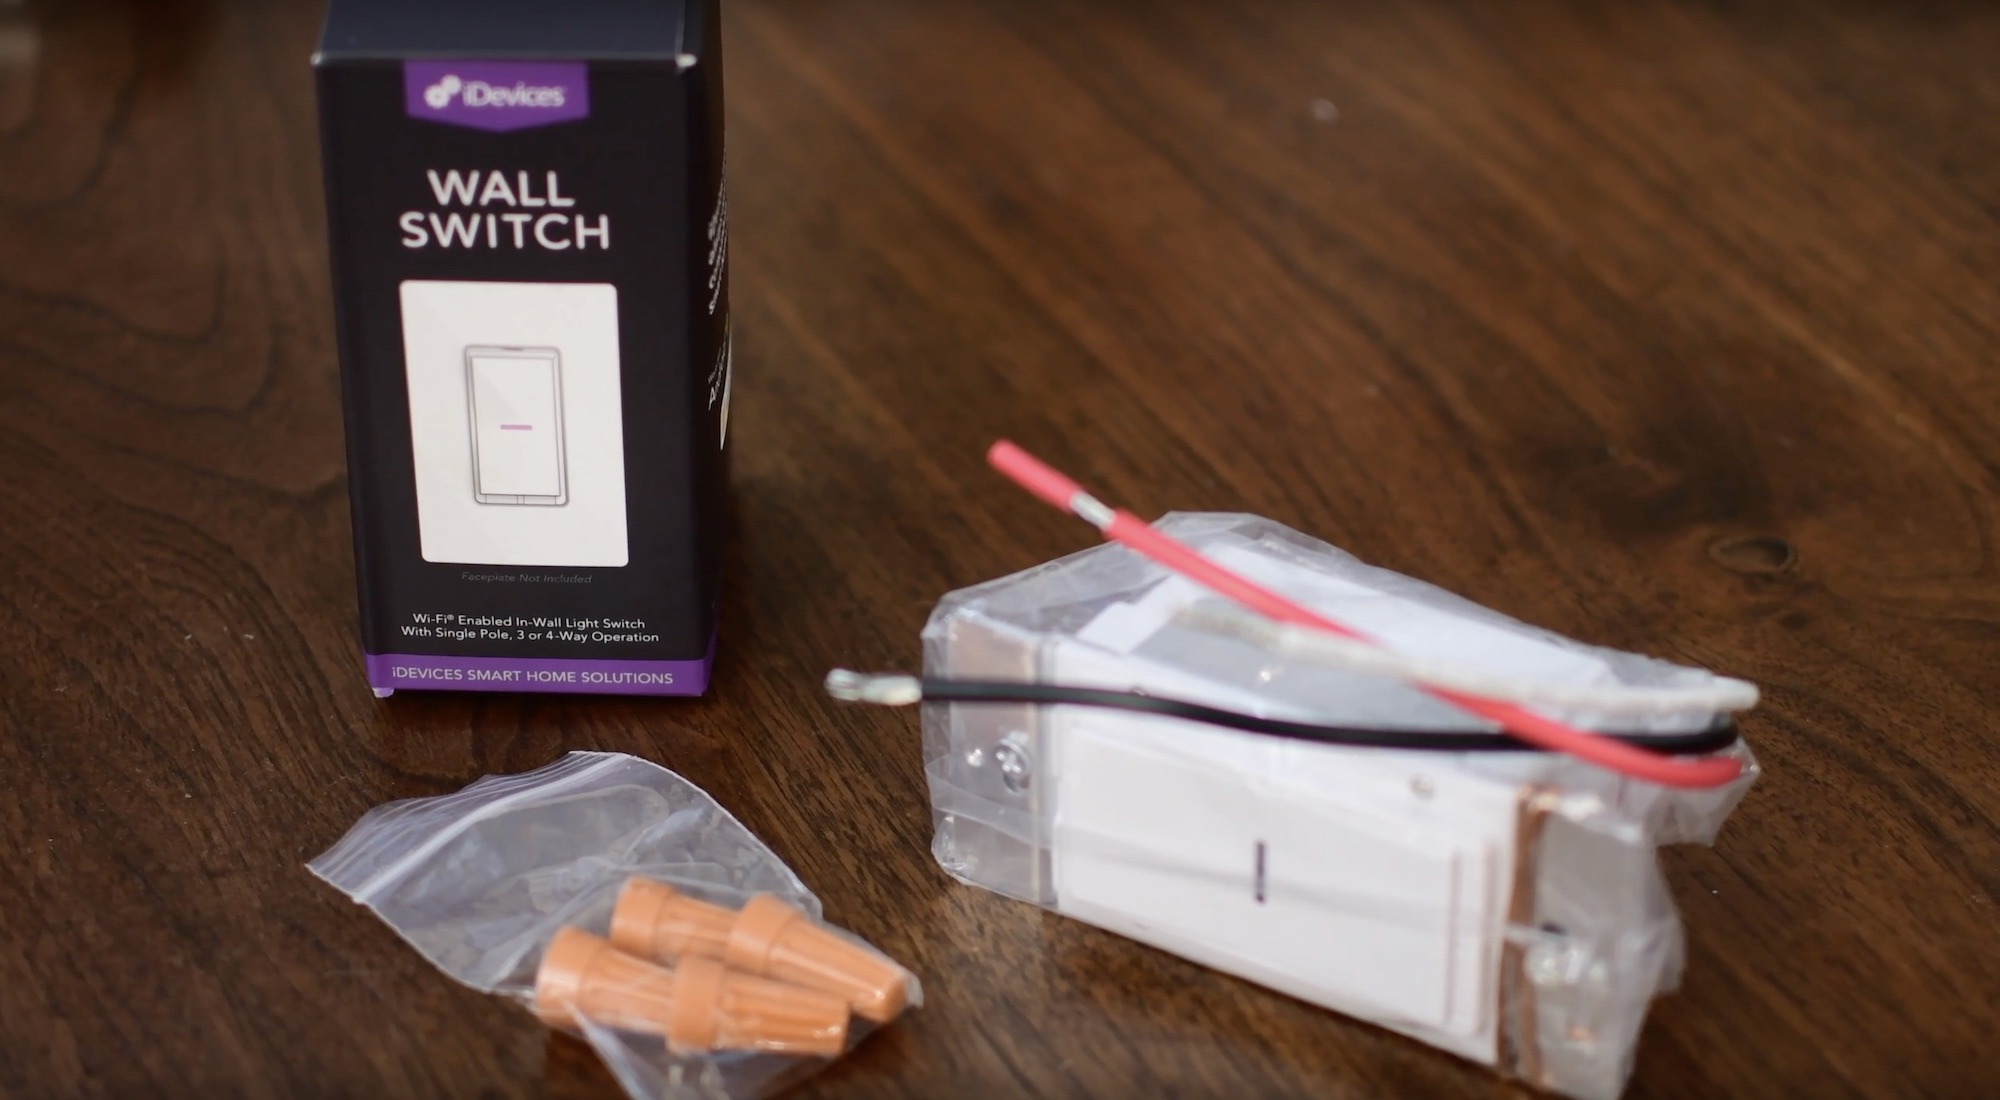 Idevices Homekit Wall Switch Review Single Pole Onon For 2way Operation Of Accessories With Their I Feel Like Light Switches Arent The Most Exciting Thing If You Are To Have A Home They Can Not Only Be Affordable But Necessary